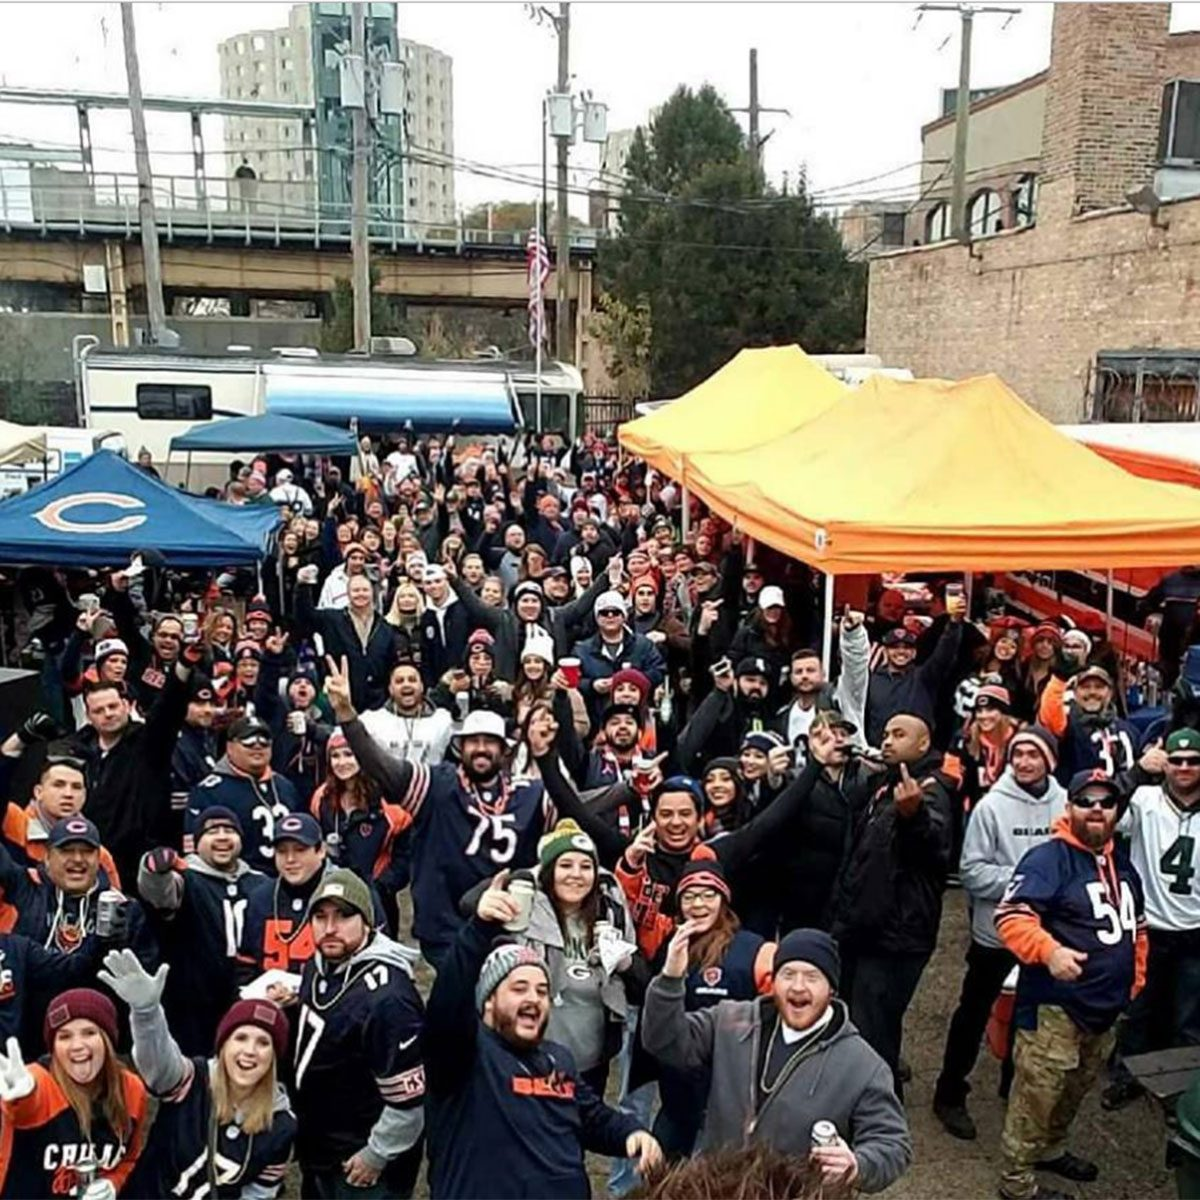 Chicago Bears fans posing for picture